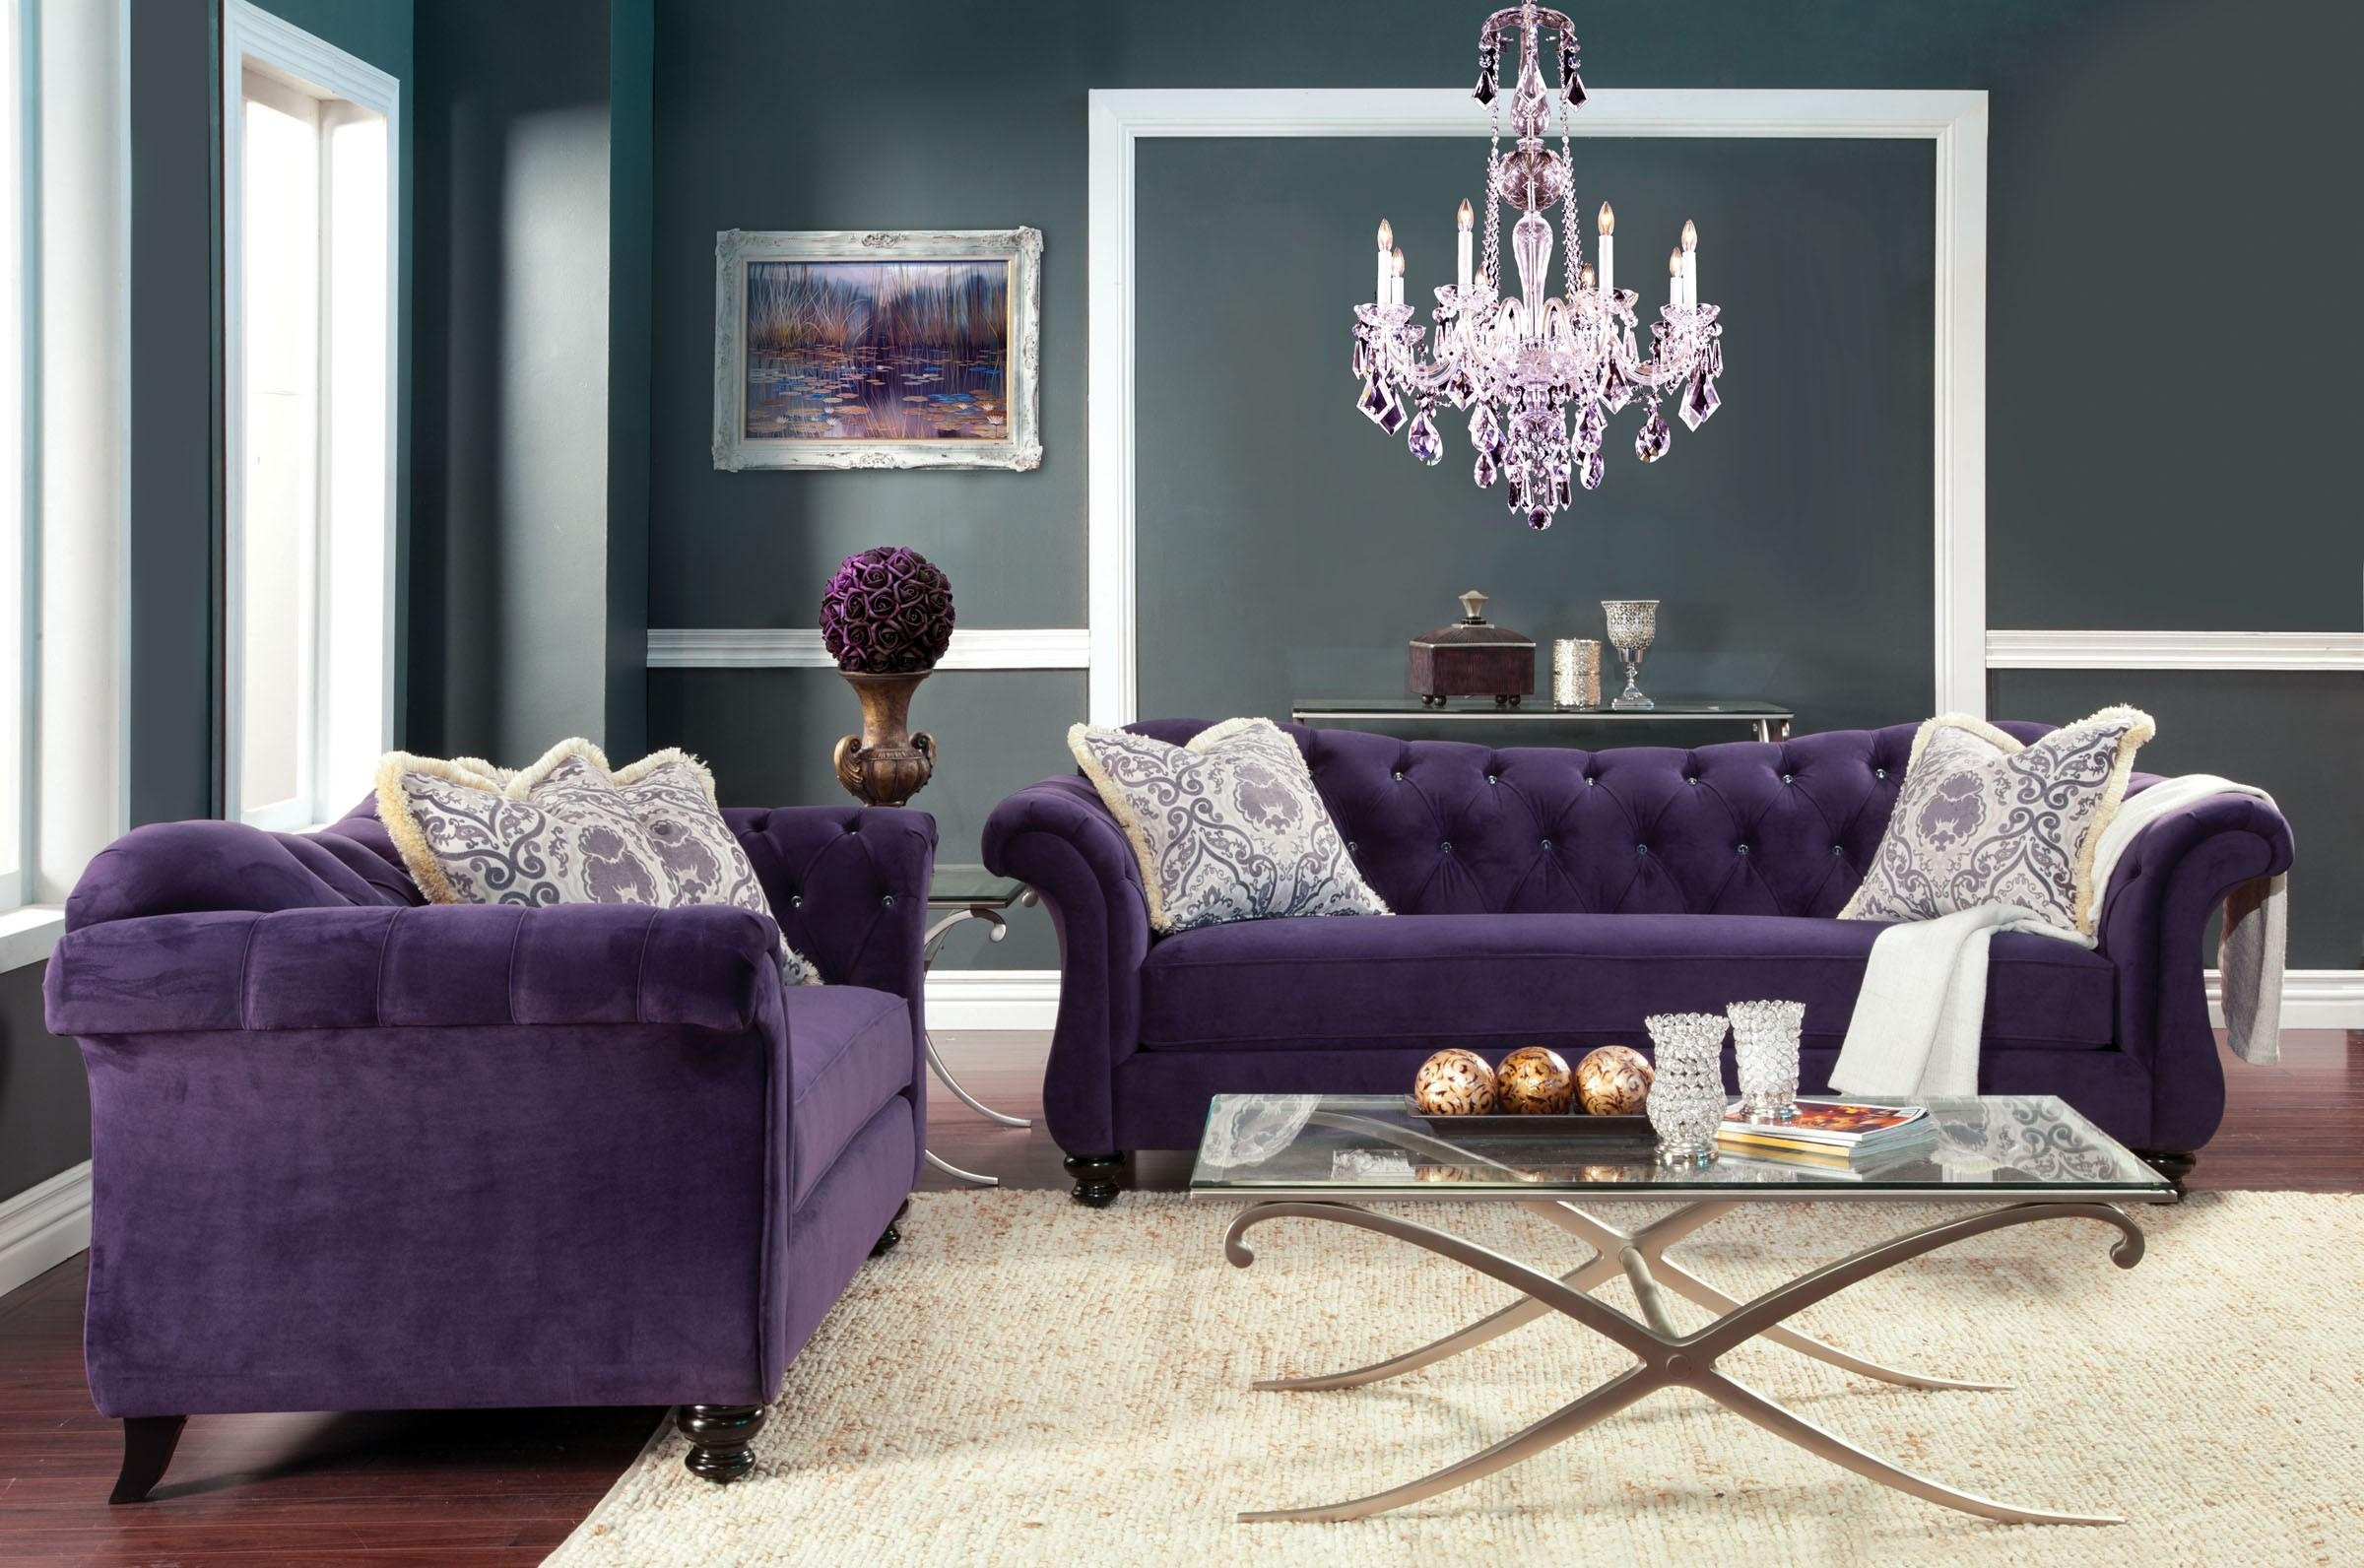 25 Best Chesterfield Sofas To Buy In 2017 regarding Chesterfield Sofa and Chairs